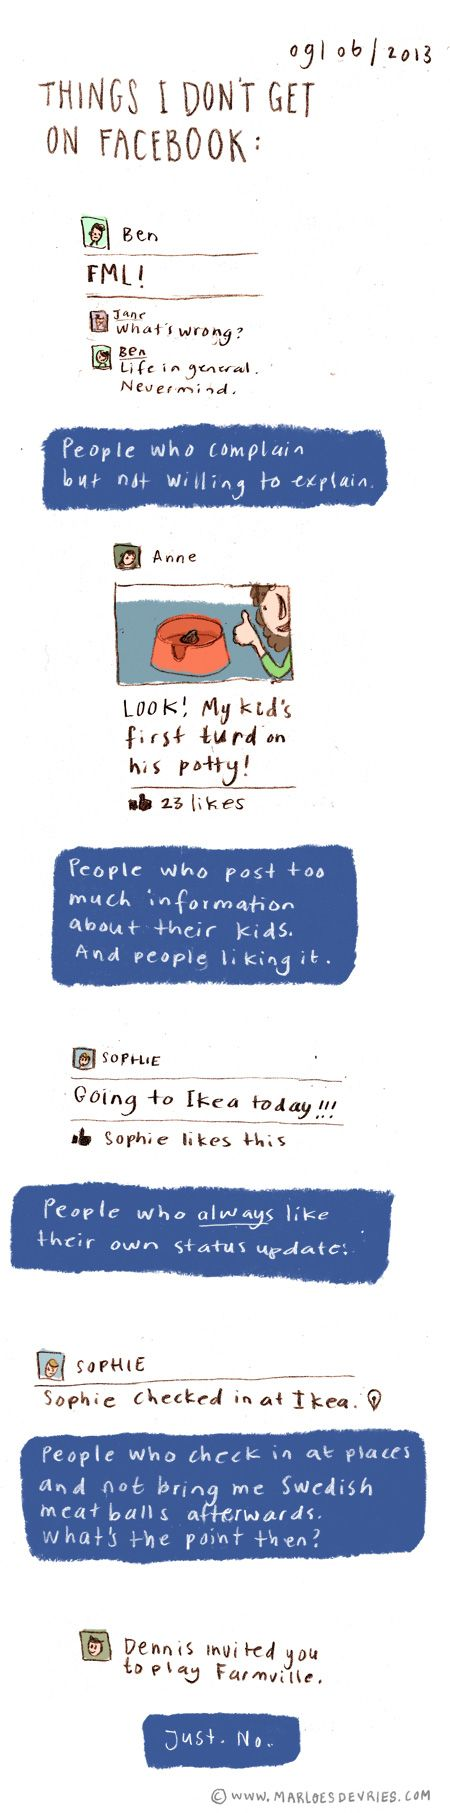 Things I don't get on Facebook, by Marloes de Vries